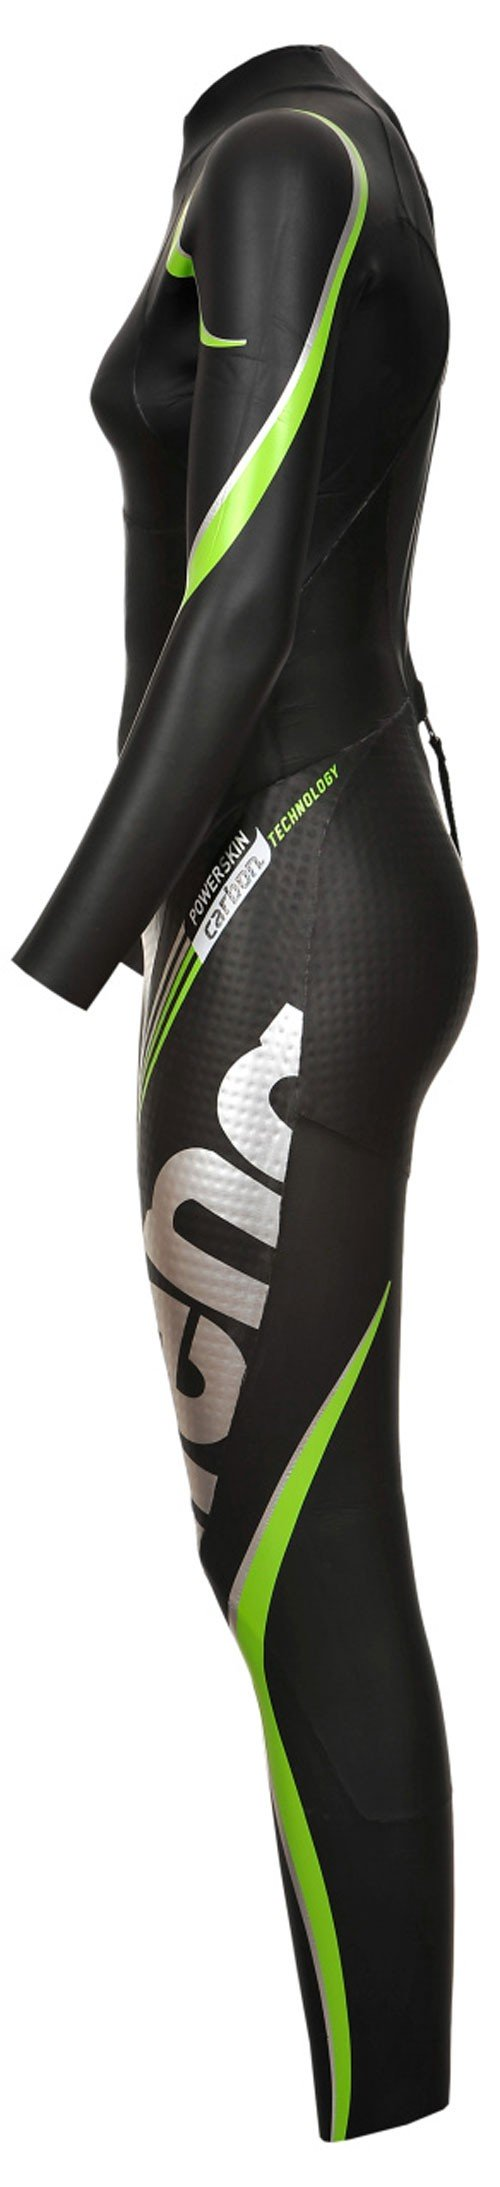 so billig 100% authentifiziert bestbewertetes Original Arena Triathlon Carbon Neoprenanzug Damen